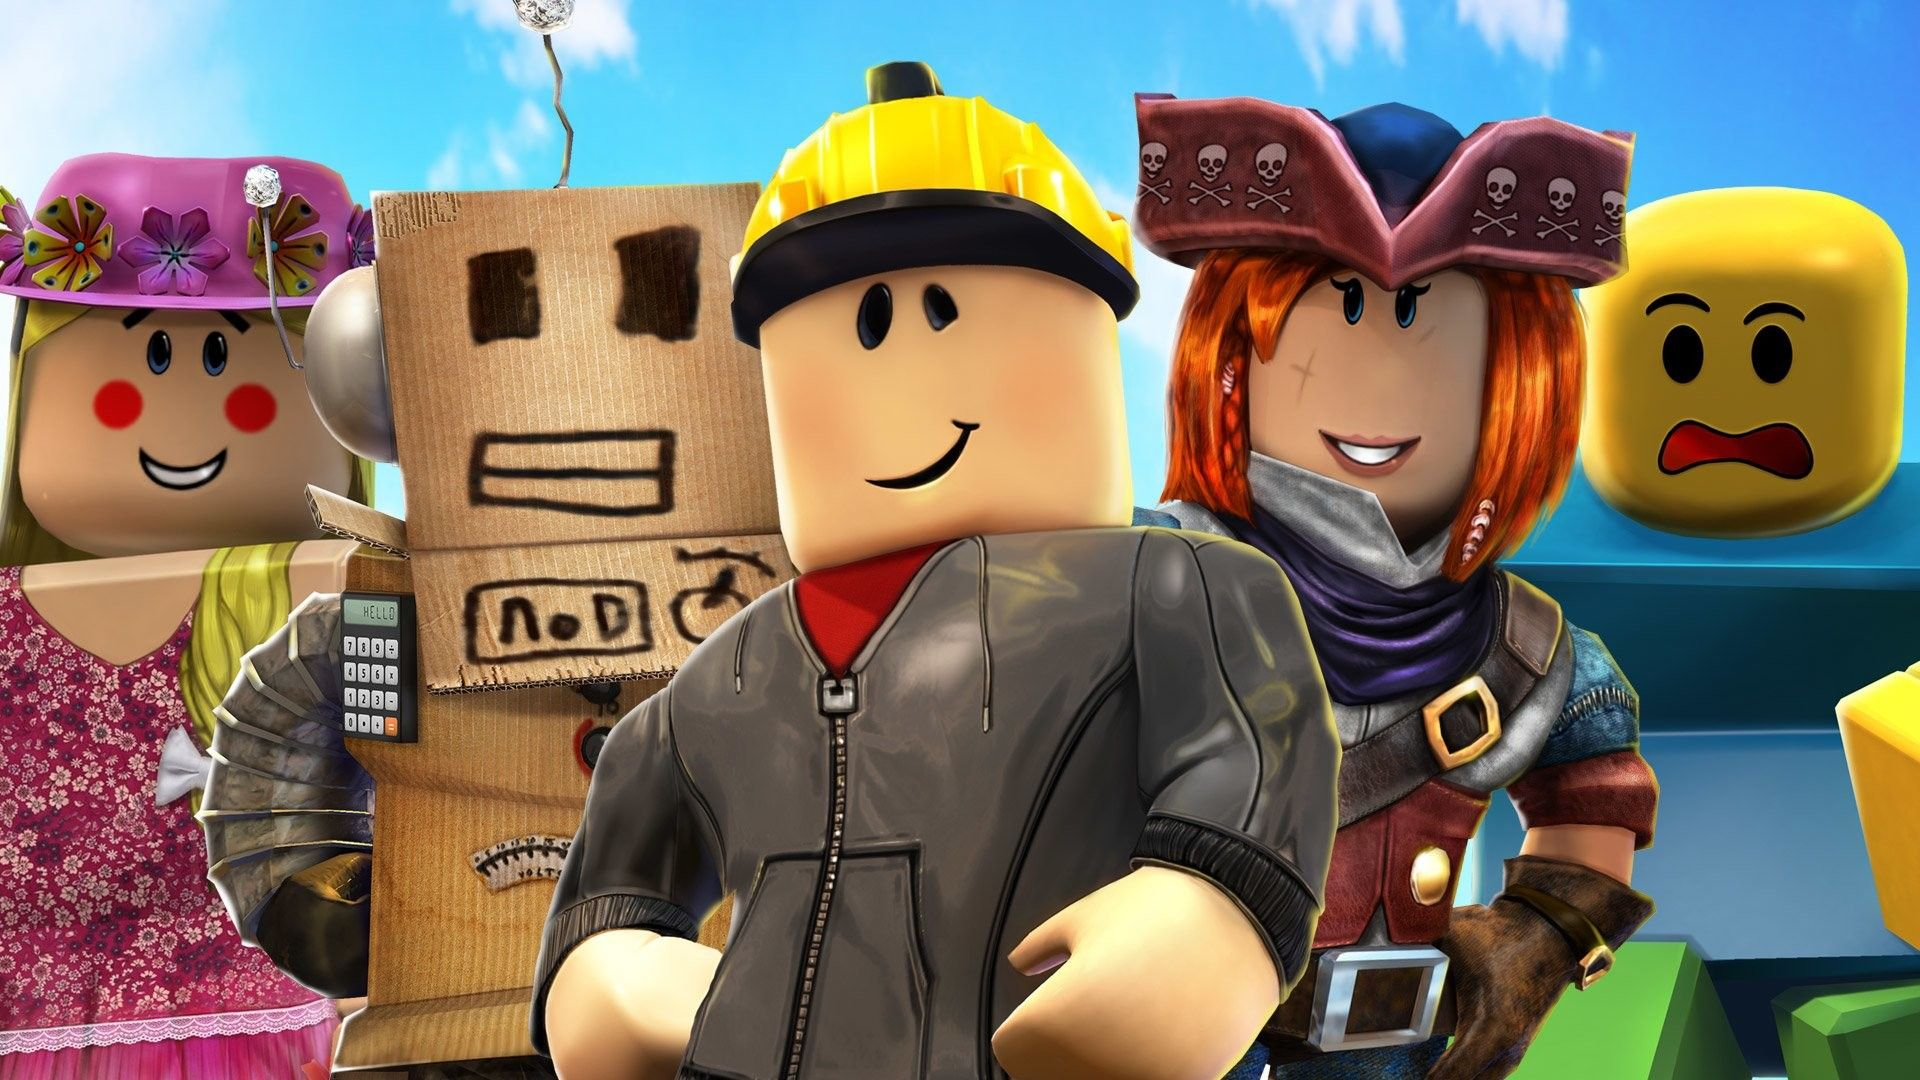 1920x1080 make it with roblox! in 2020 Roblox, Game